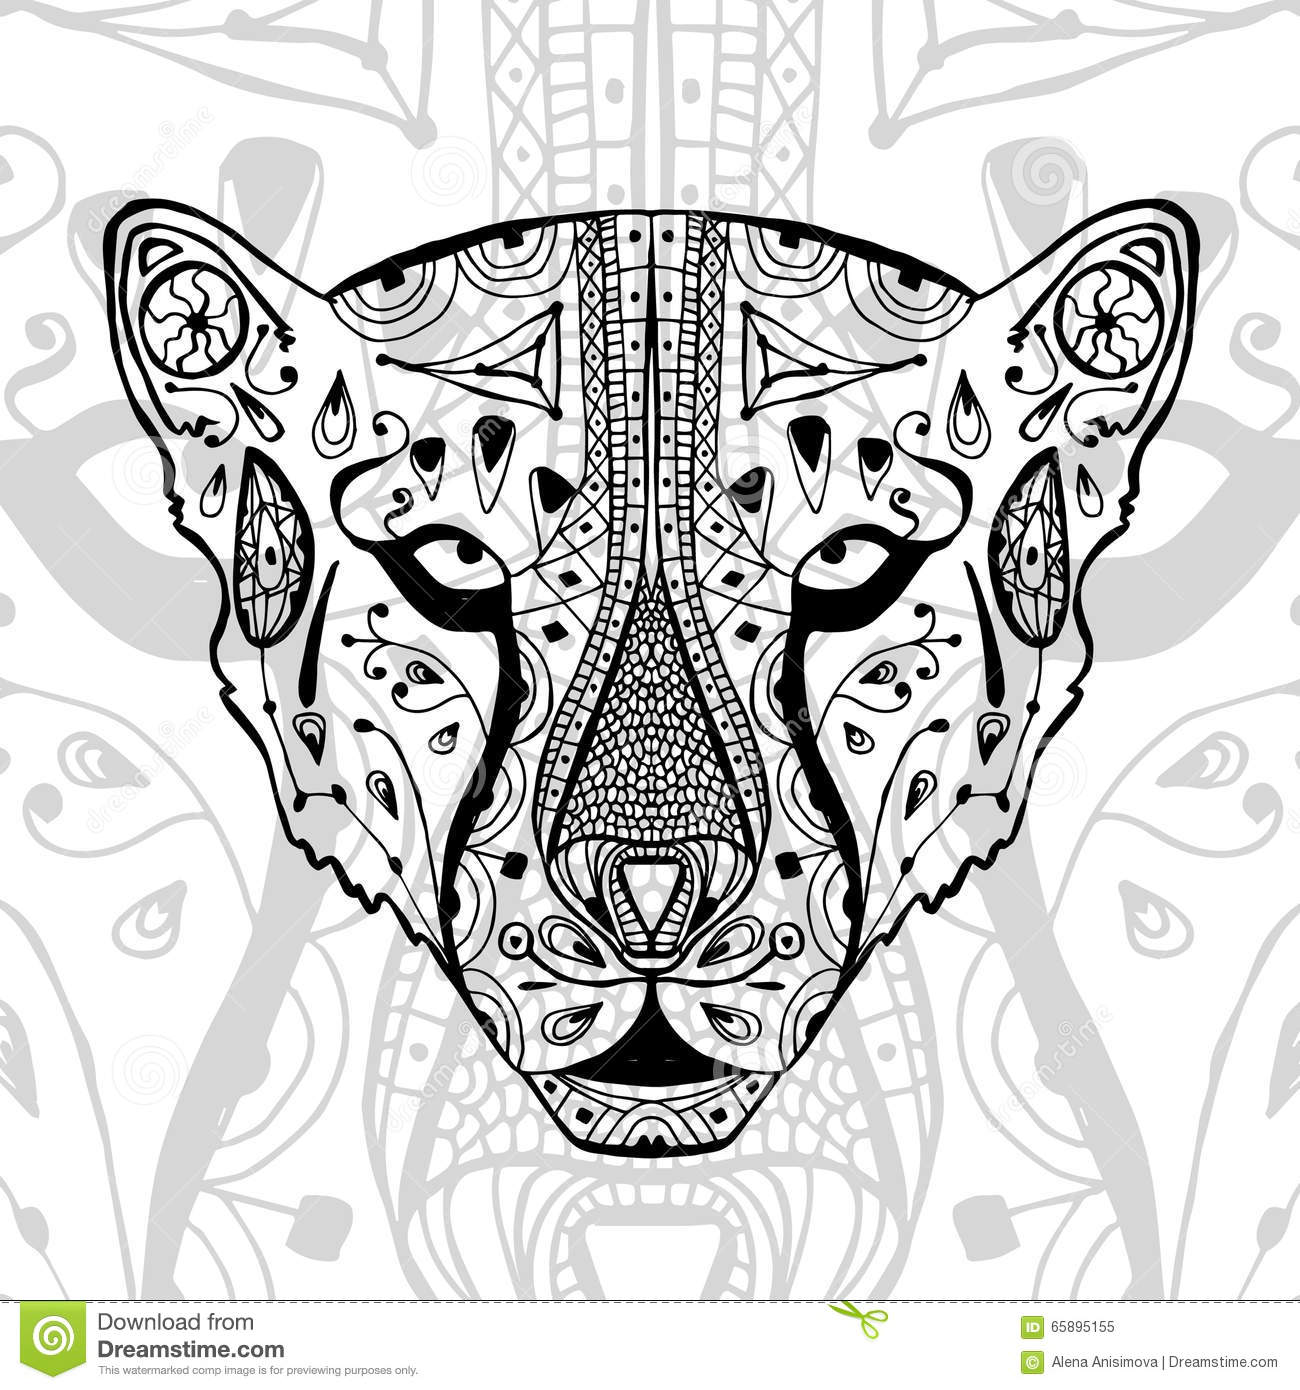 Stress coloring books for adults - Anti Stress Coloring Book For Adults Philippines Coloring Book For Adults Anti Stress The Black